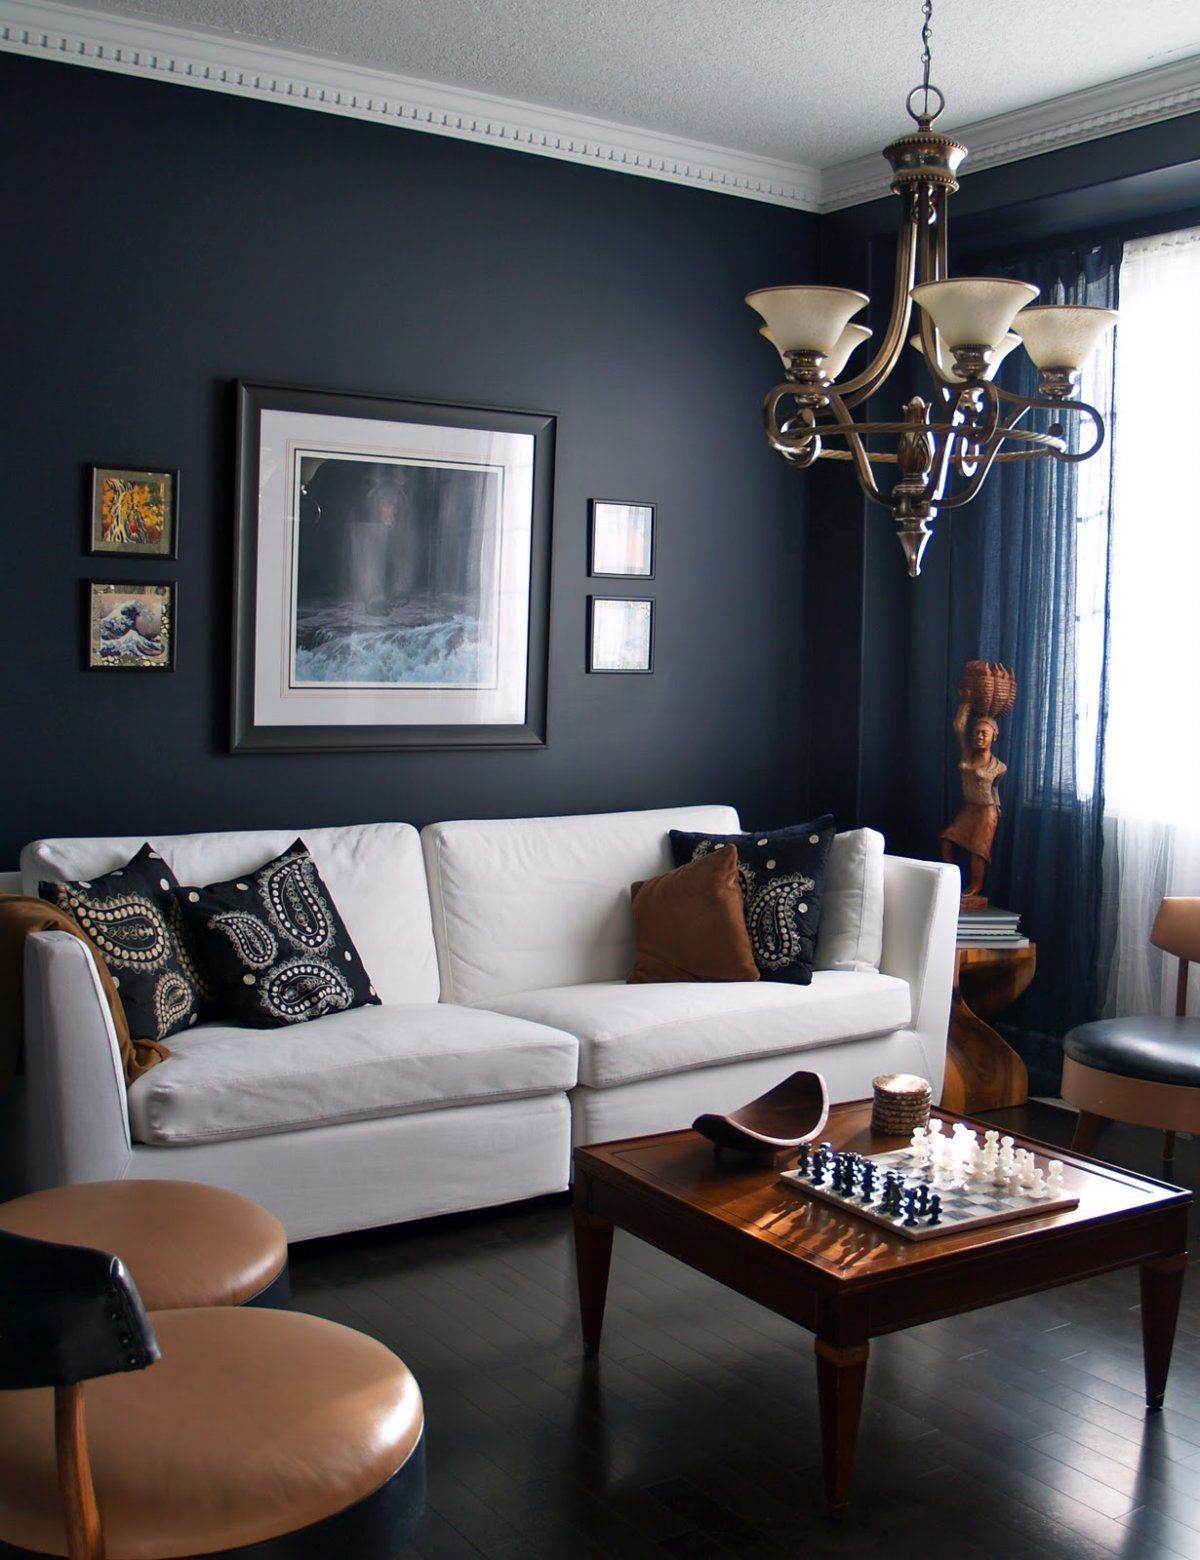 Black and blue bedroom walls - Navy Blue Walls